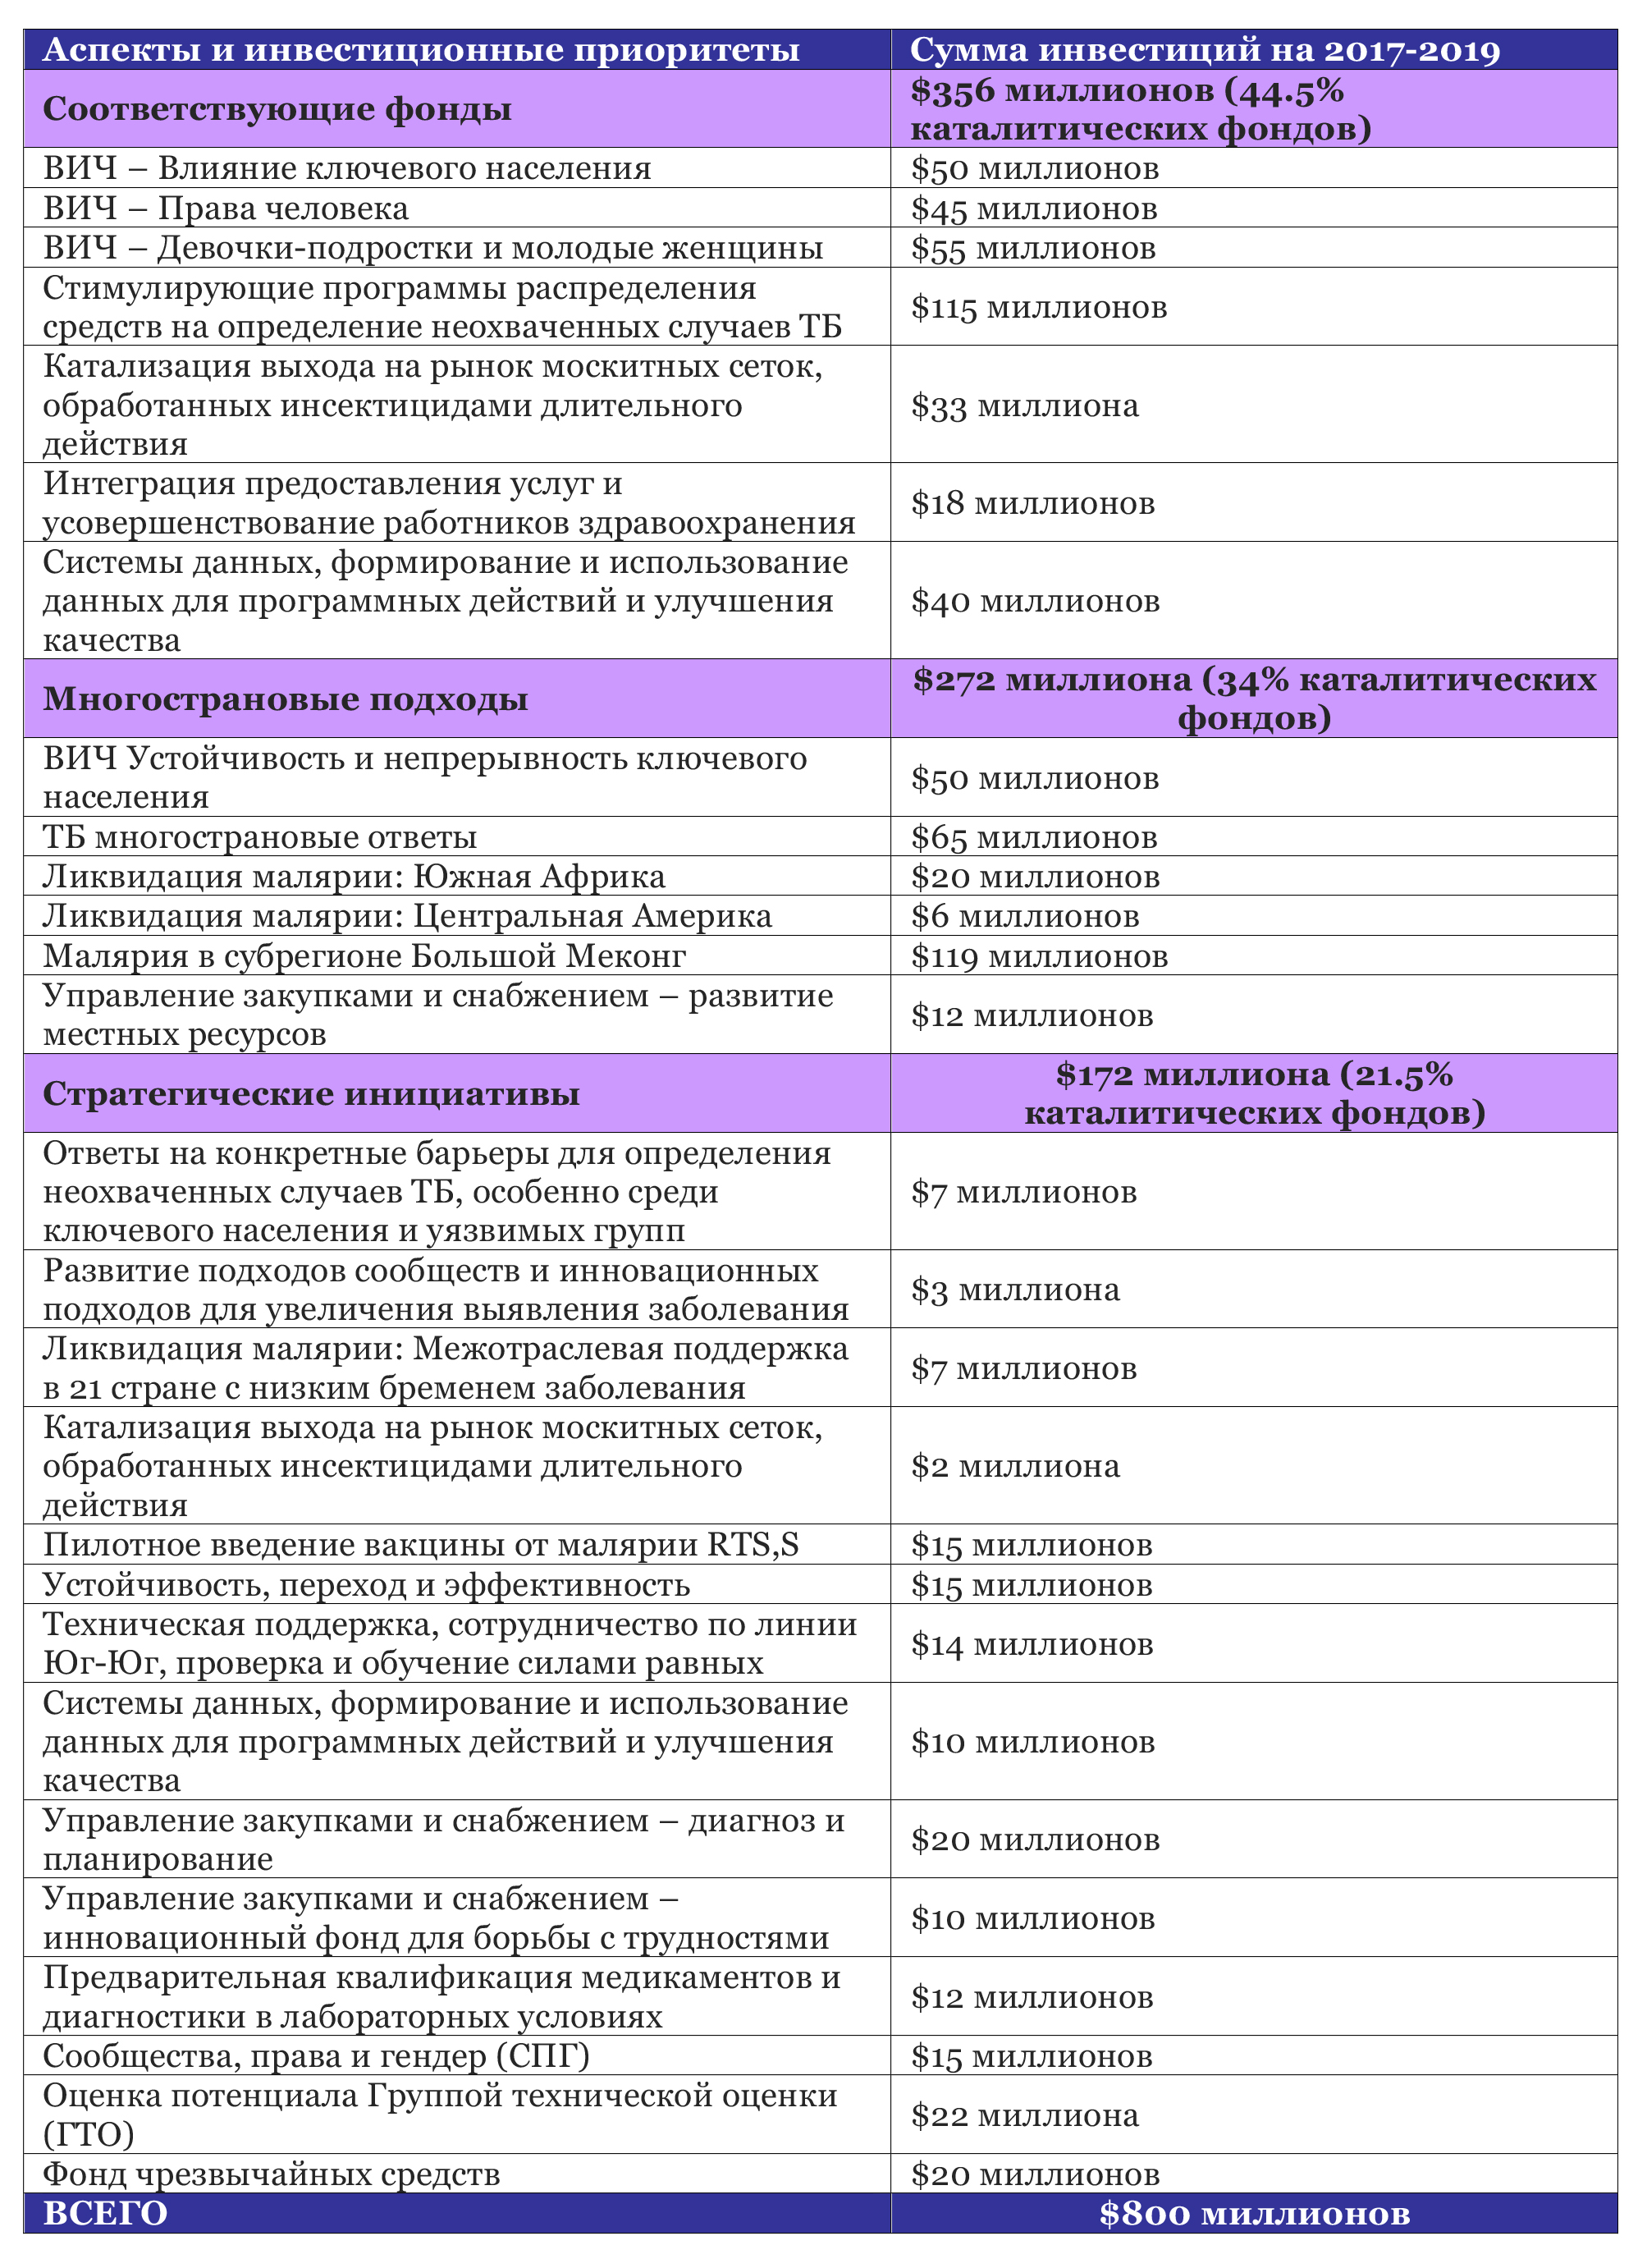 Microsoft Word - table 1 rus.docx